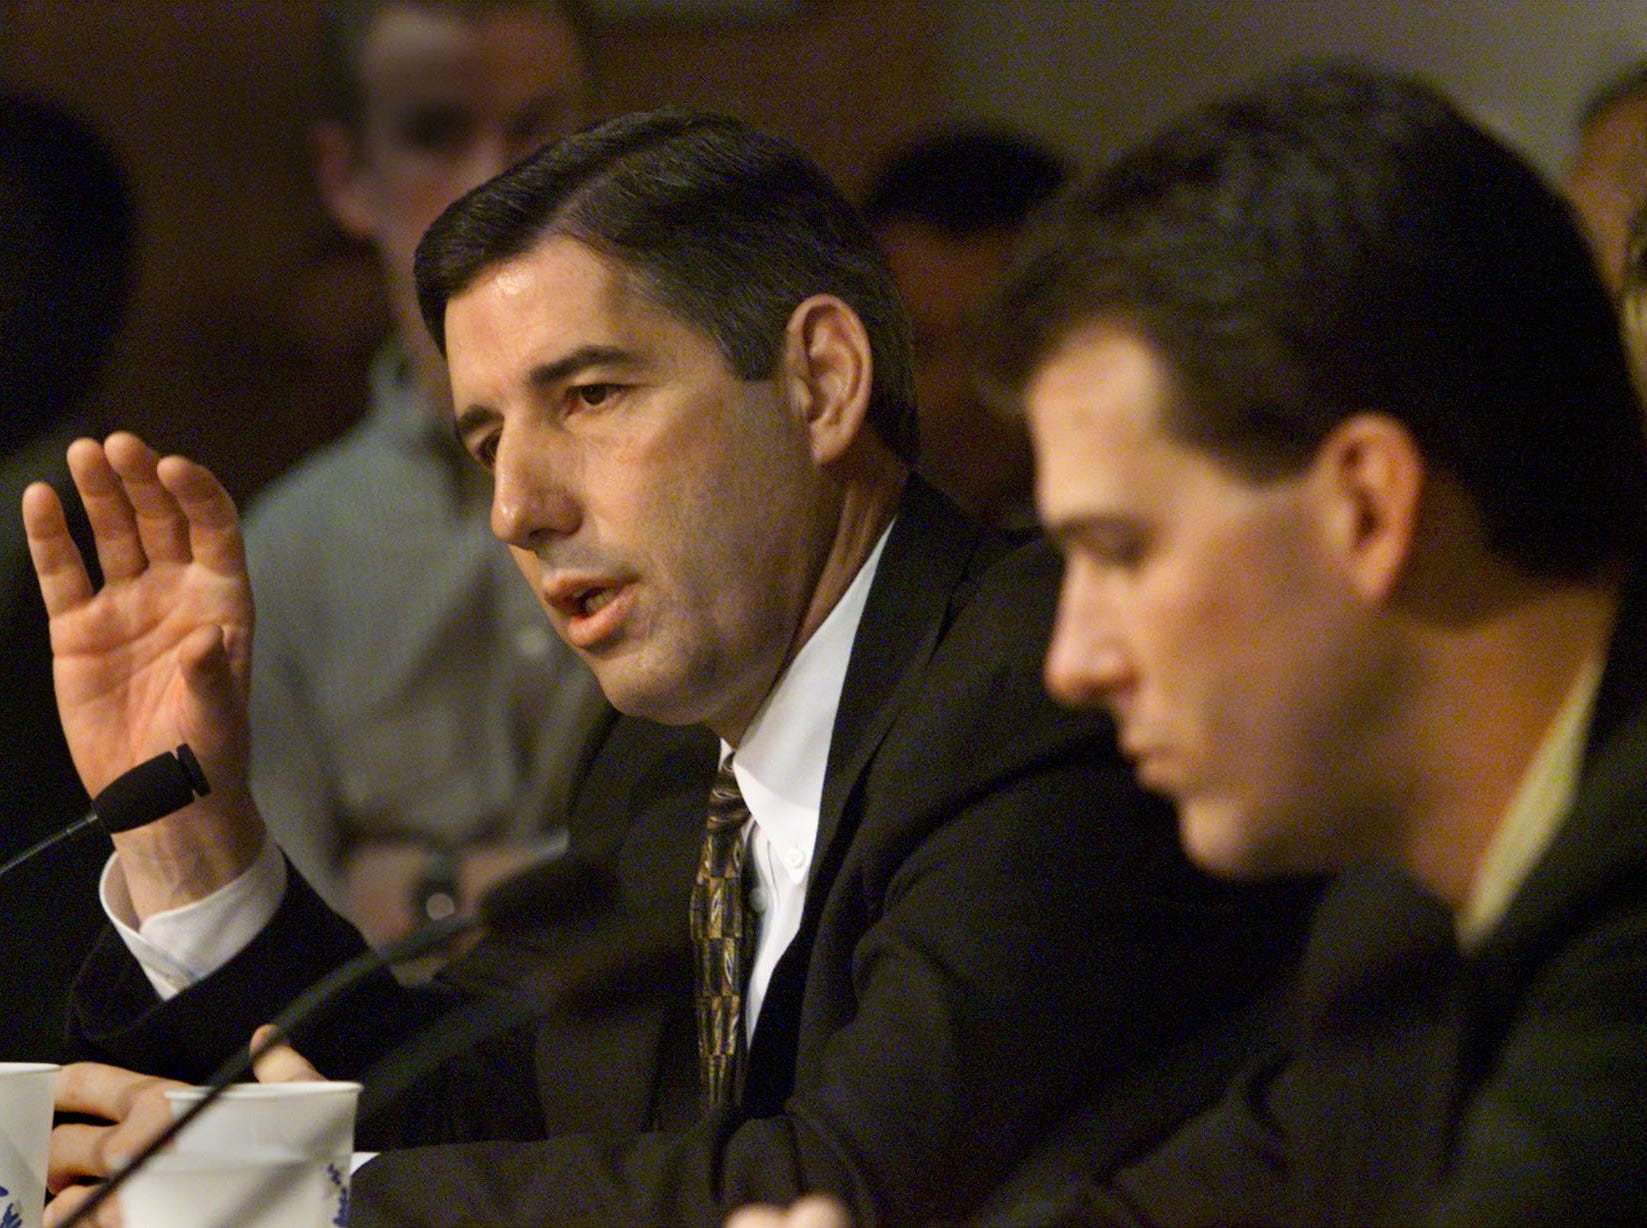 From 1999: Iowa Athletic Director Bob Bowlsby, left, answers questions March 22, 1999, about the hiring of basketball coach Steve Alford, right.